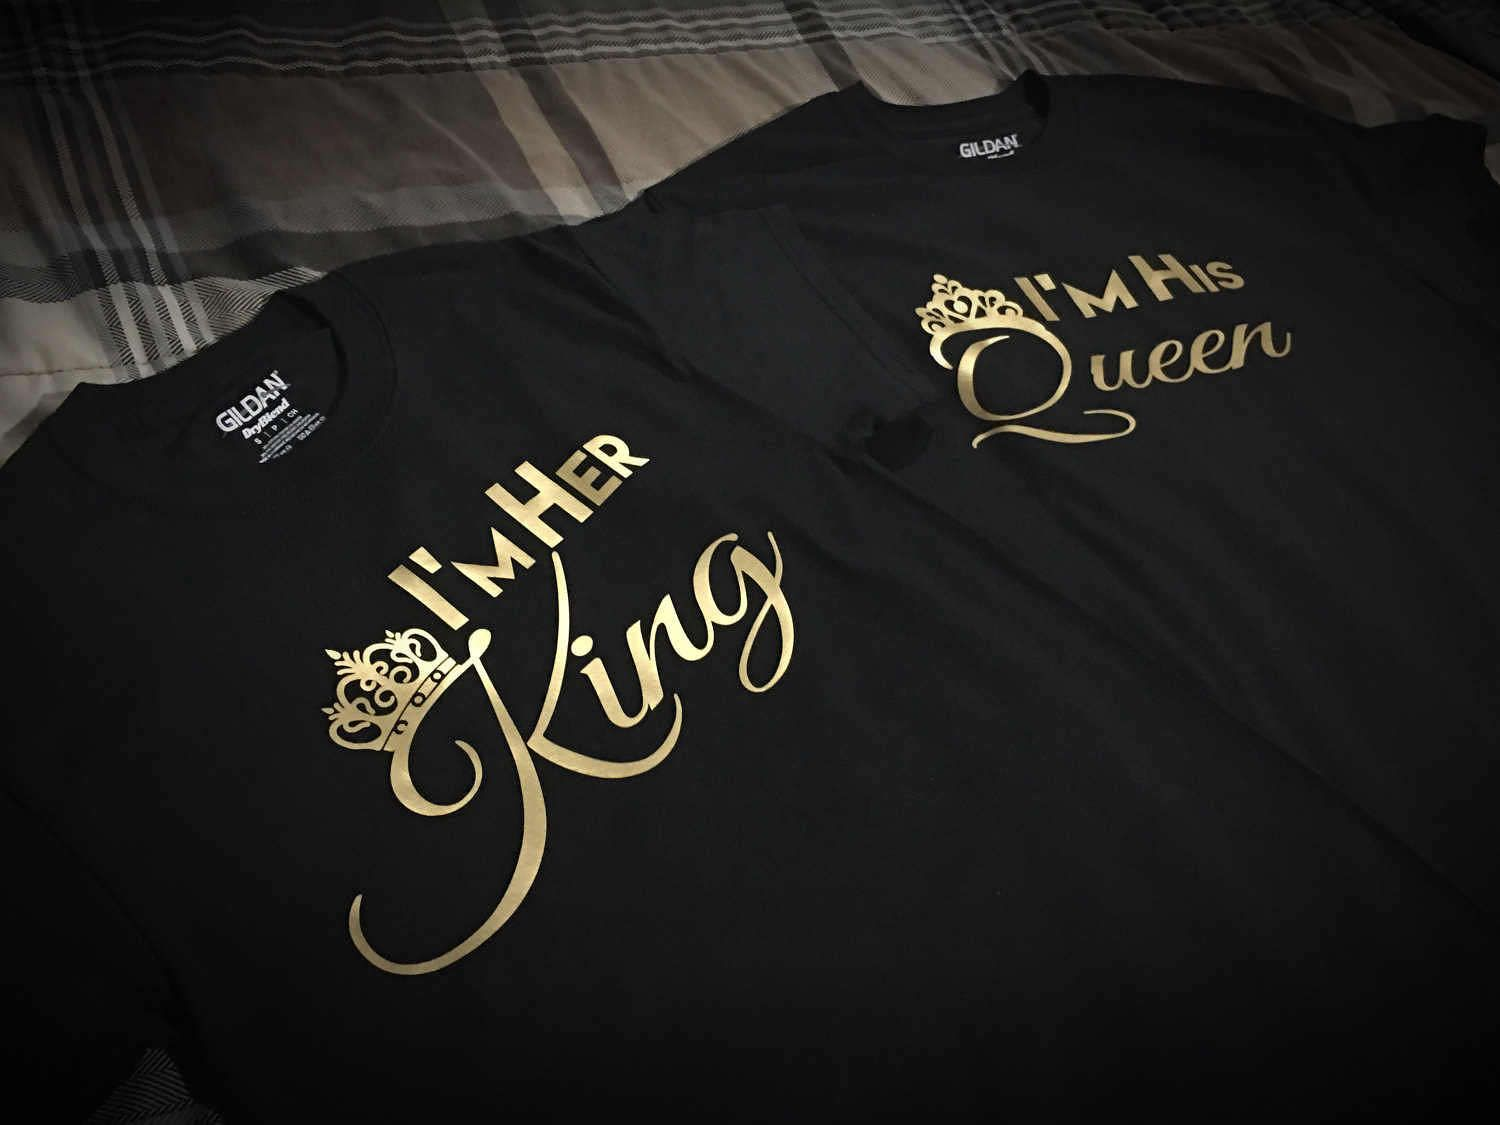 f71ab4bf20 Couples King and Queen Shirts for Relationship / Engagement - Gold Edition  by TheMeekApparel on Etsy